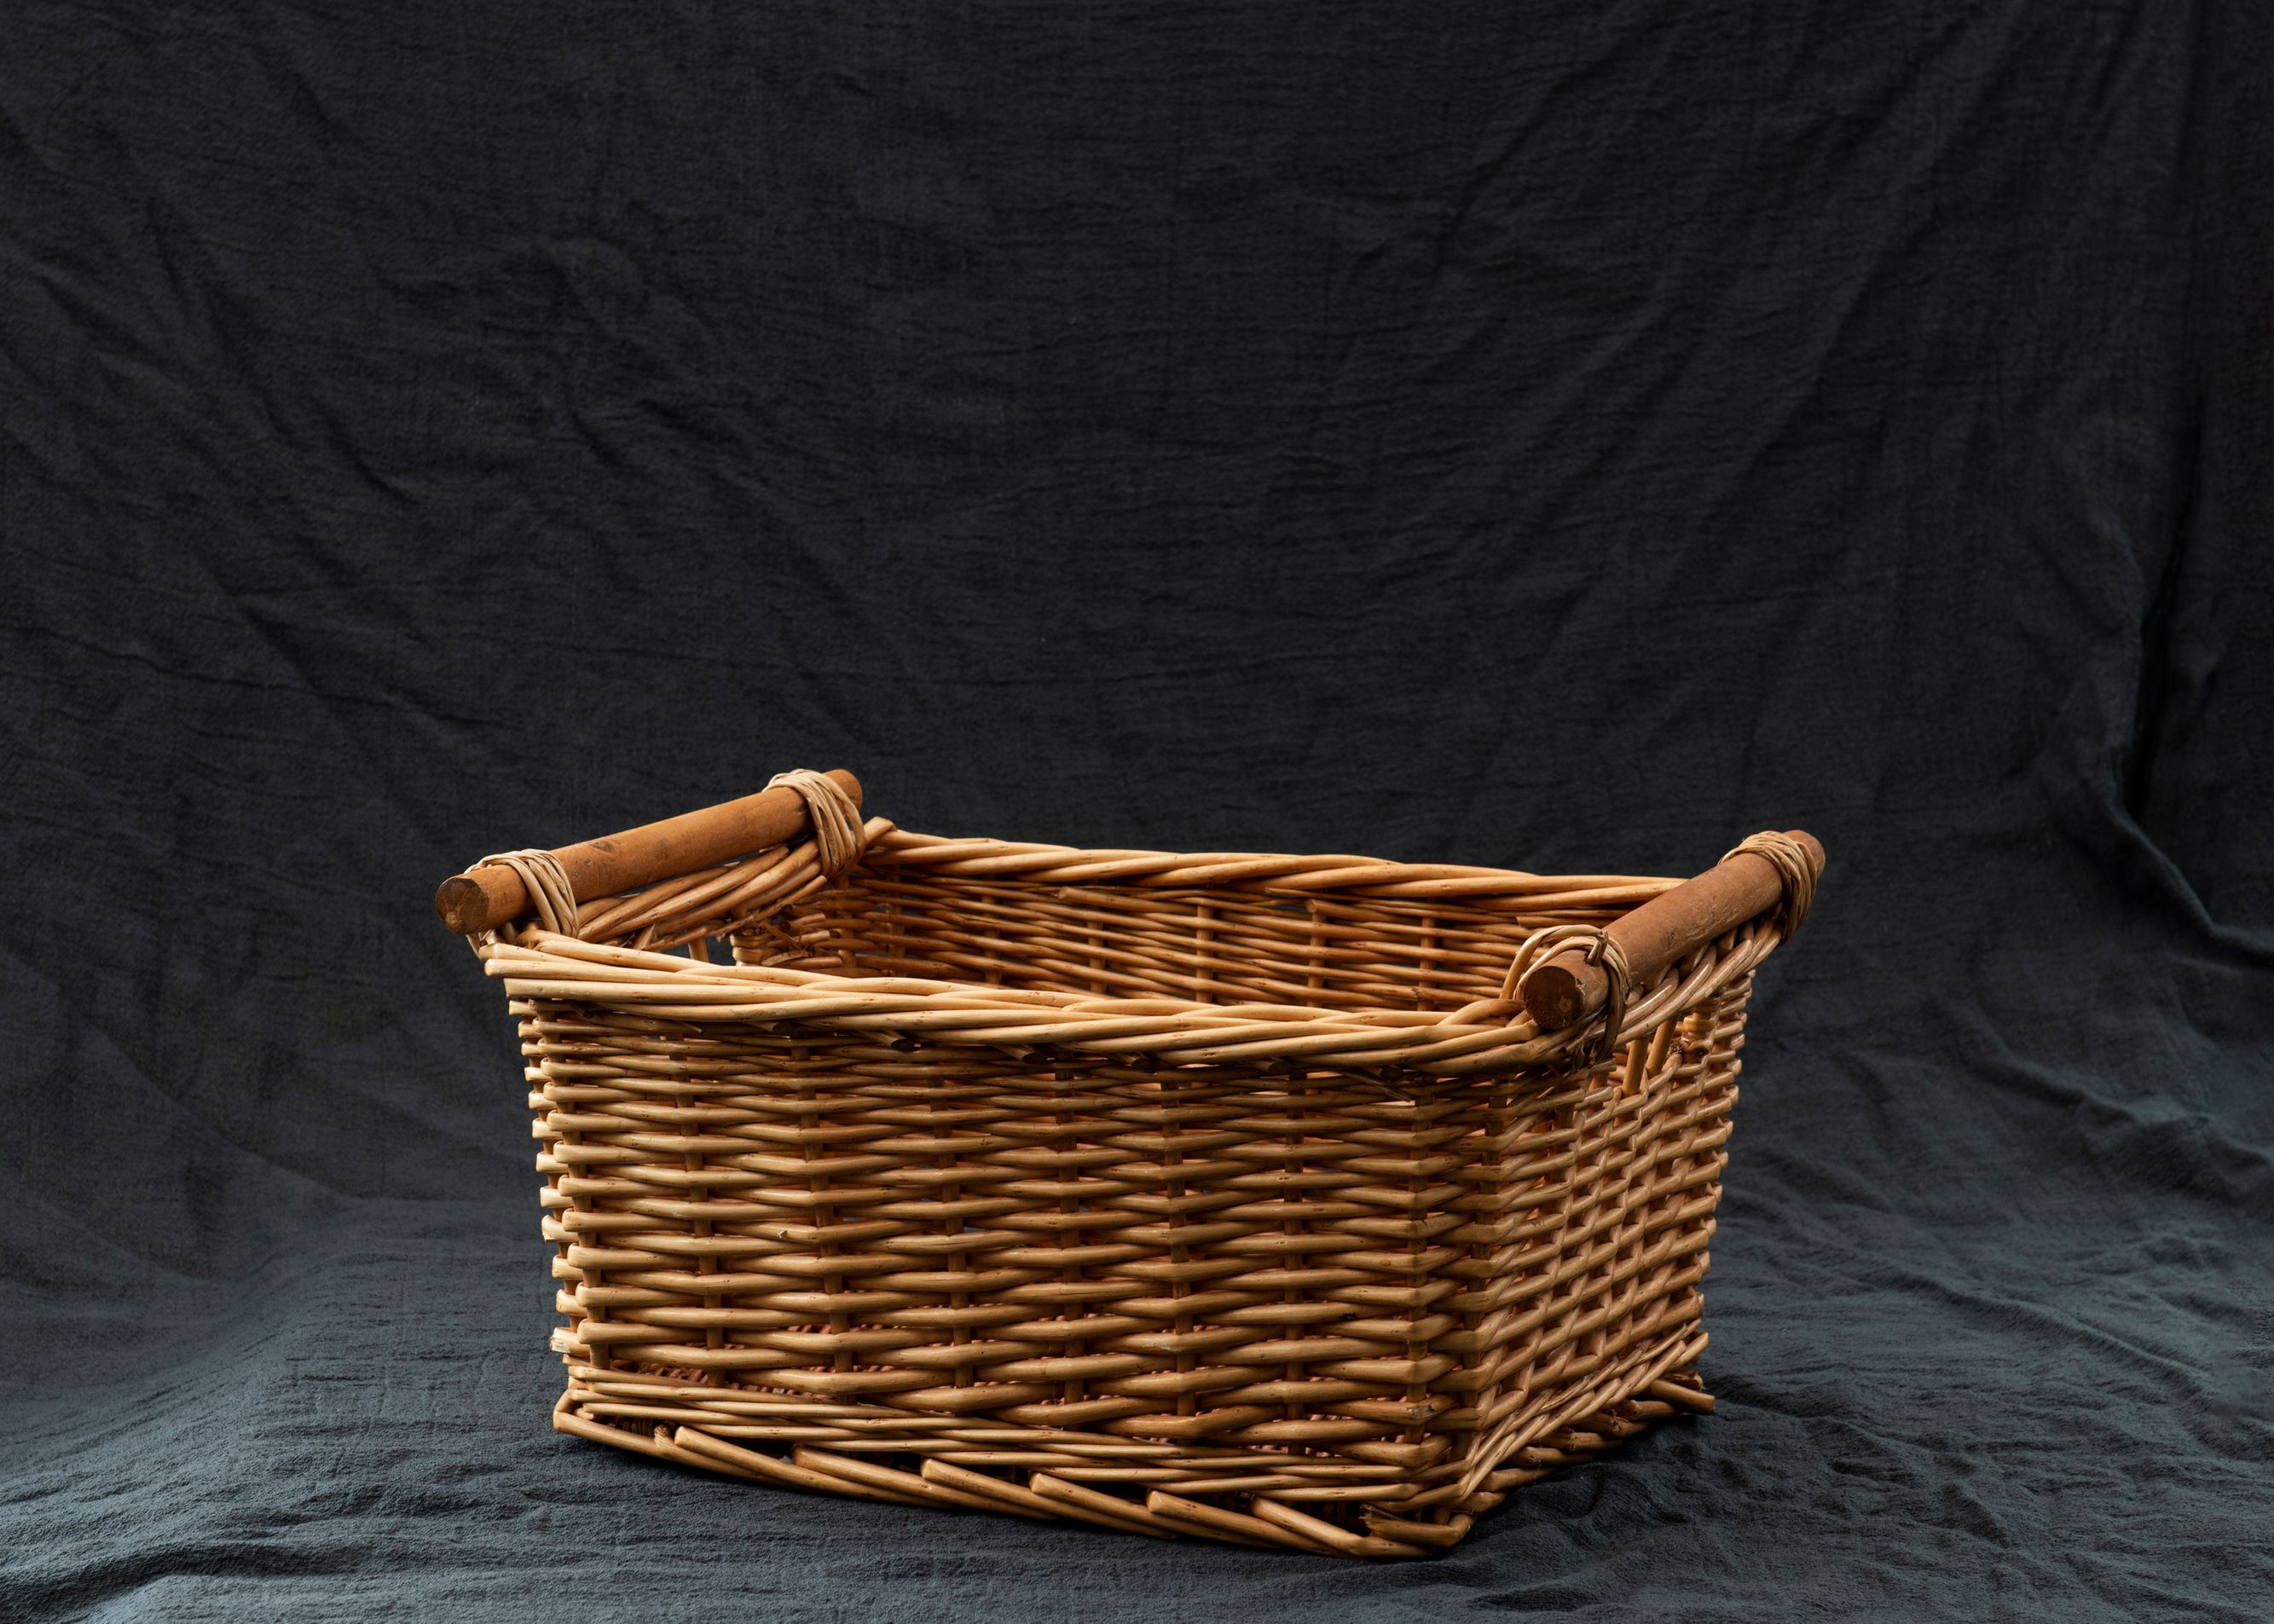 This basket can improve your image on line.